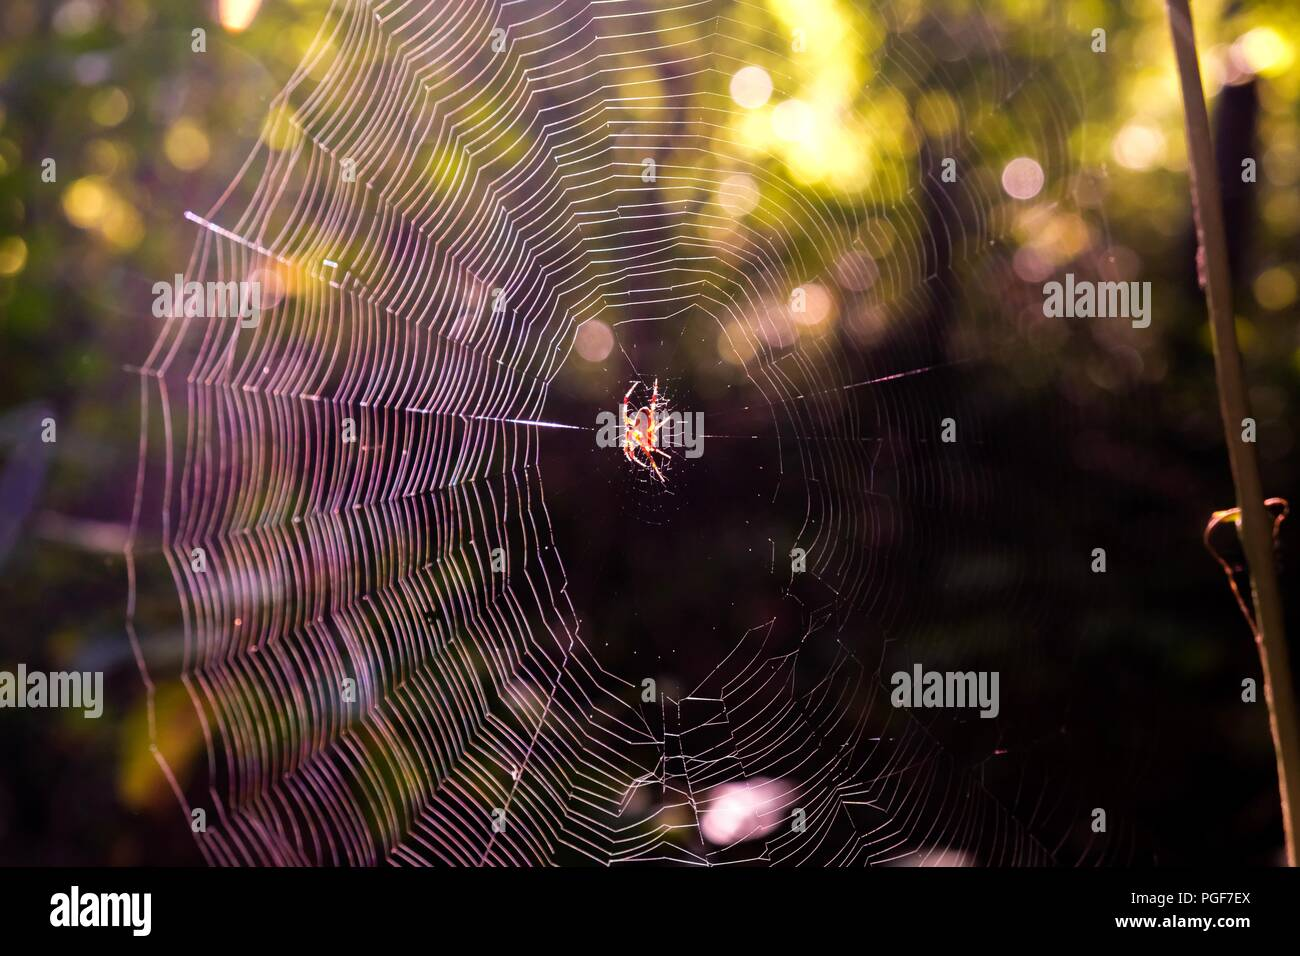 Early morning sunlight shining on a spotted orb-weaver spider centered on her web in the forest at Yates Mill County Park in Raleigh North Carolina - Stock Image